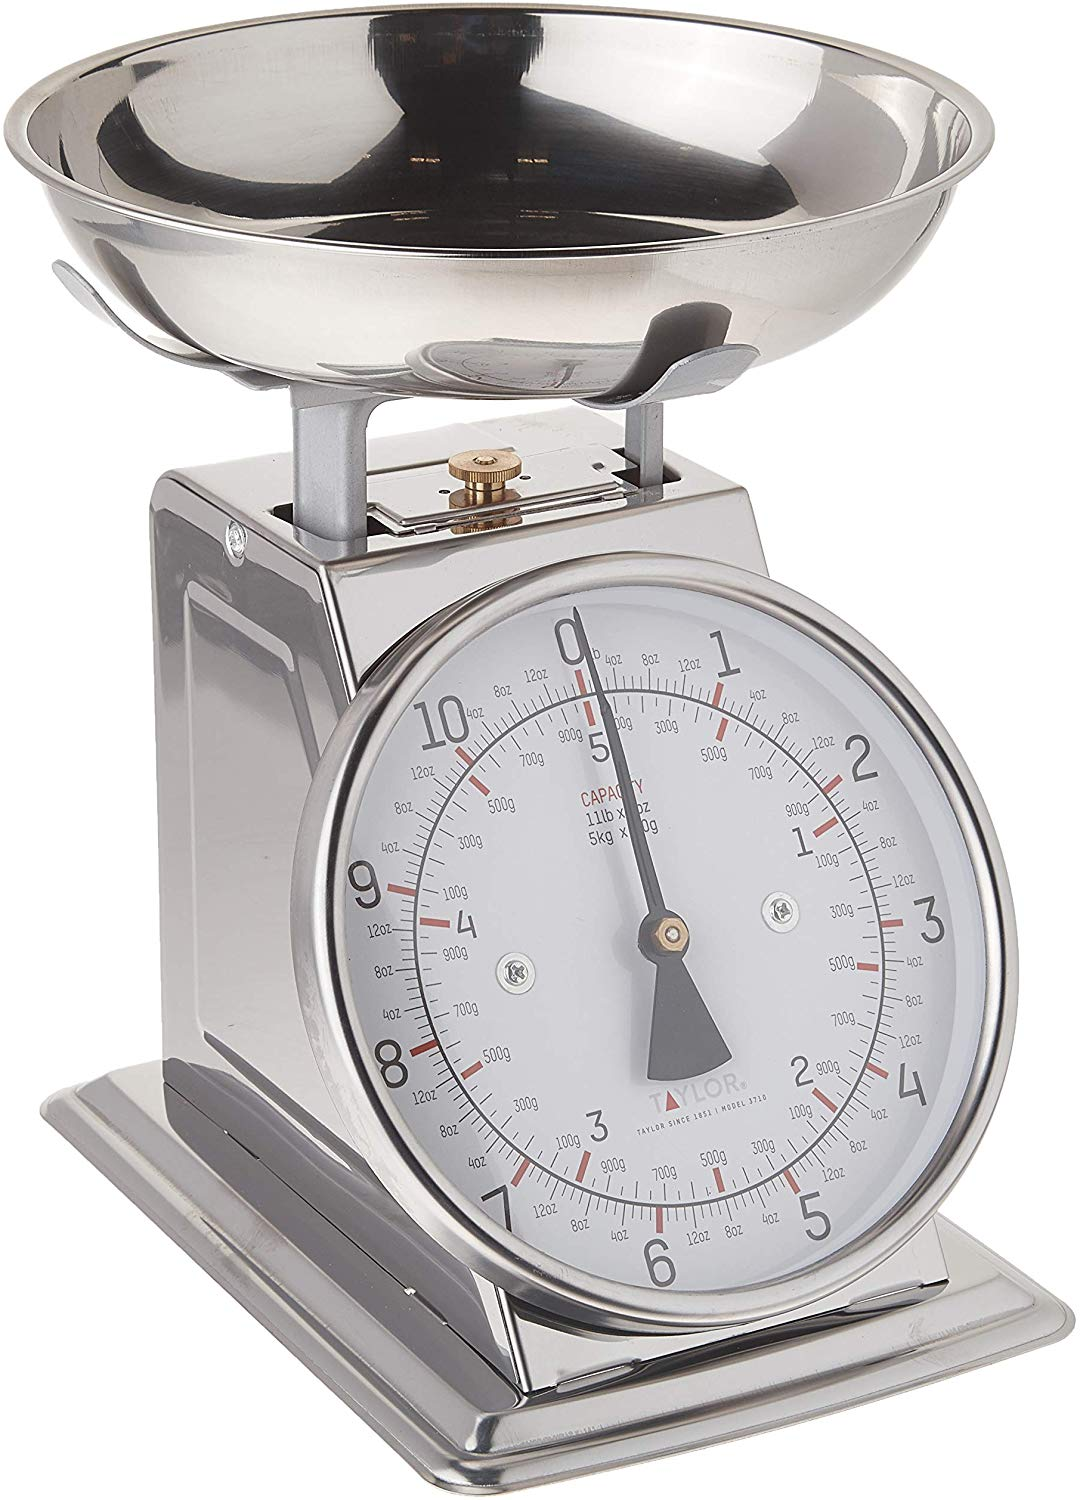 Taylor precision stainless steel analog kitchen scale